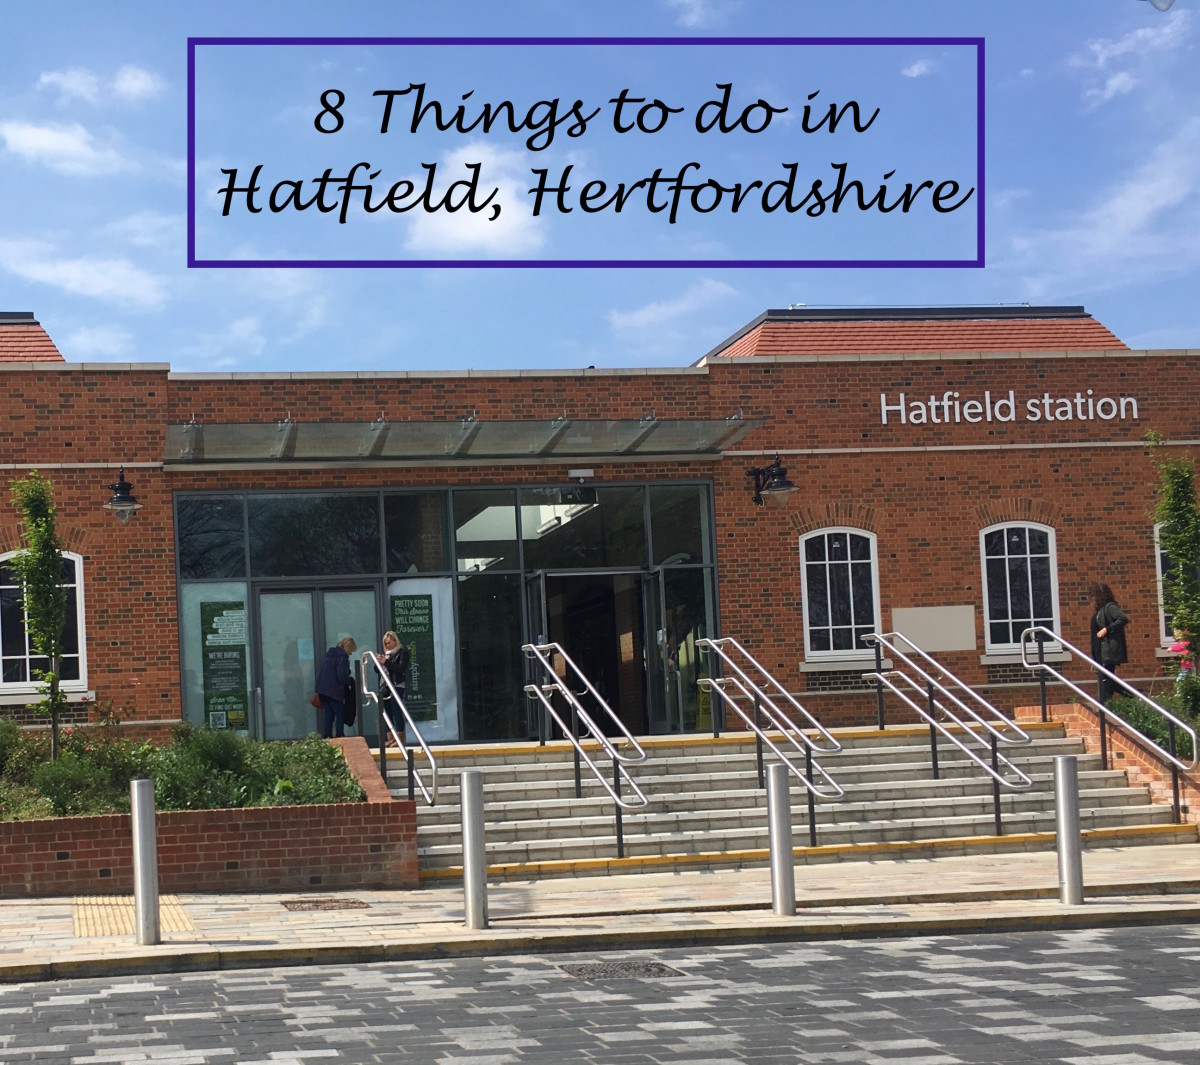 8 Things to do in Hatfield, Hertfordshire